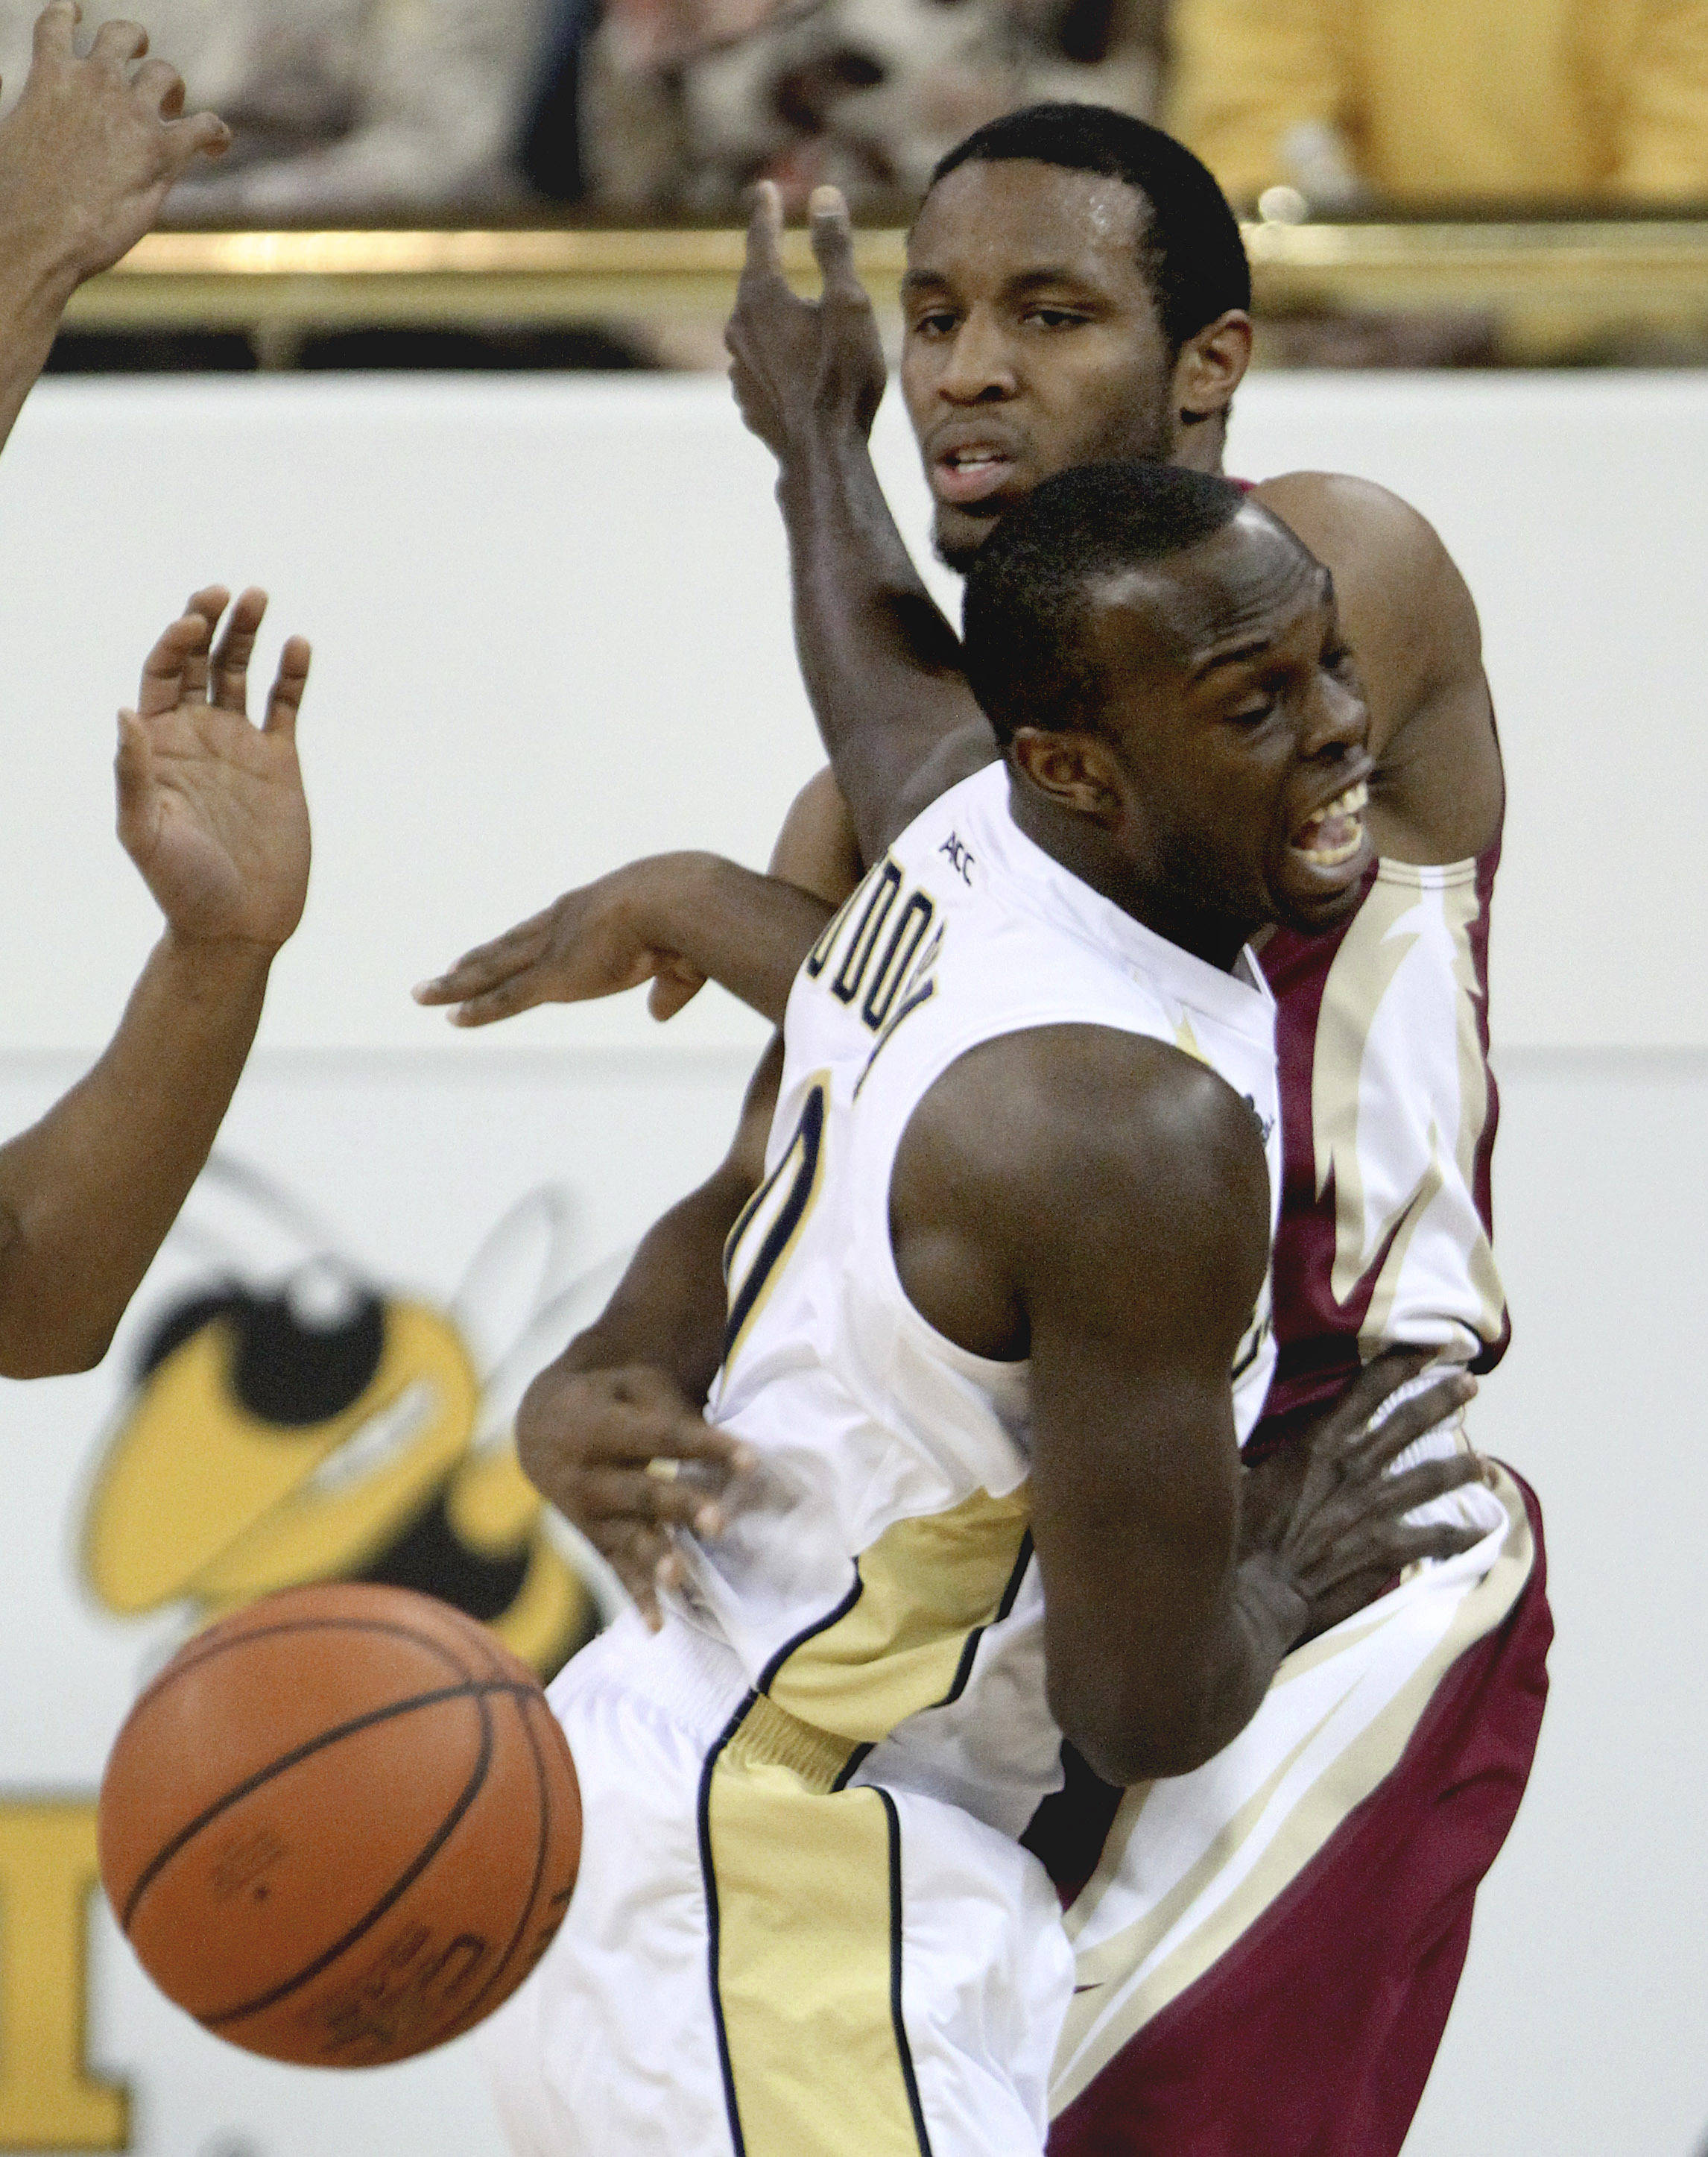 Florida State guard Michael Snaer, right, passes the ball behind the back of Georgia Tech guard Mfon Udofia during the first half. (AP Photo/David Goldman)